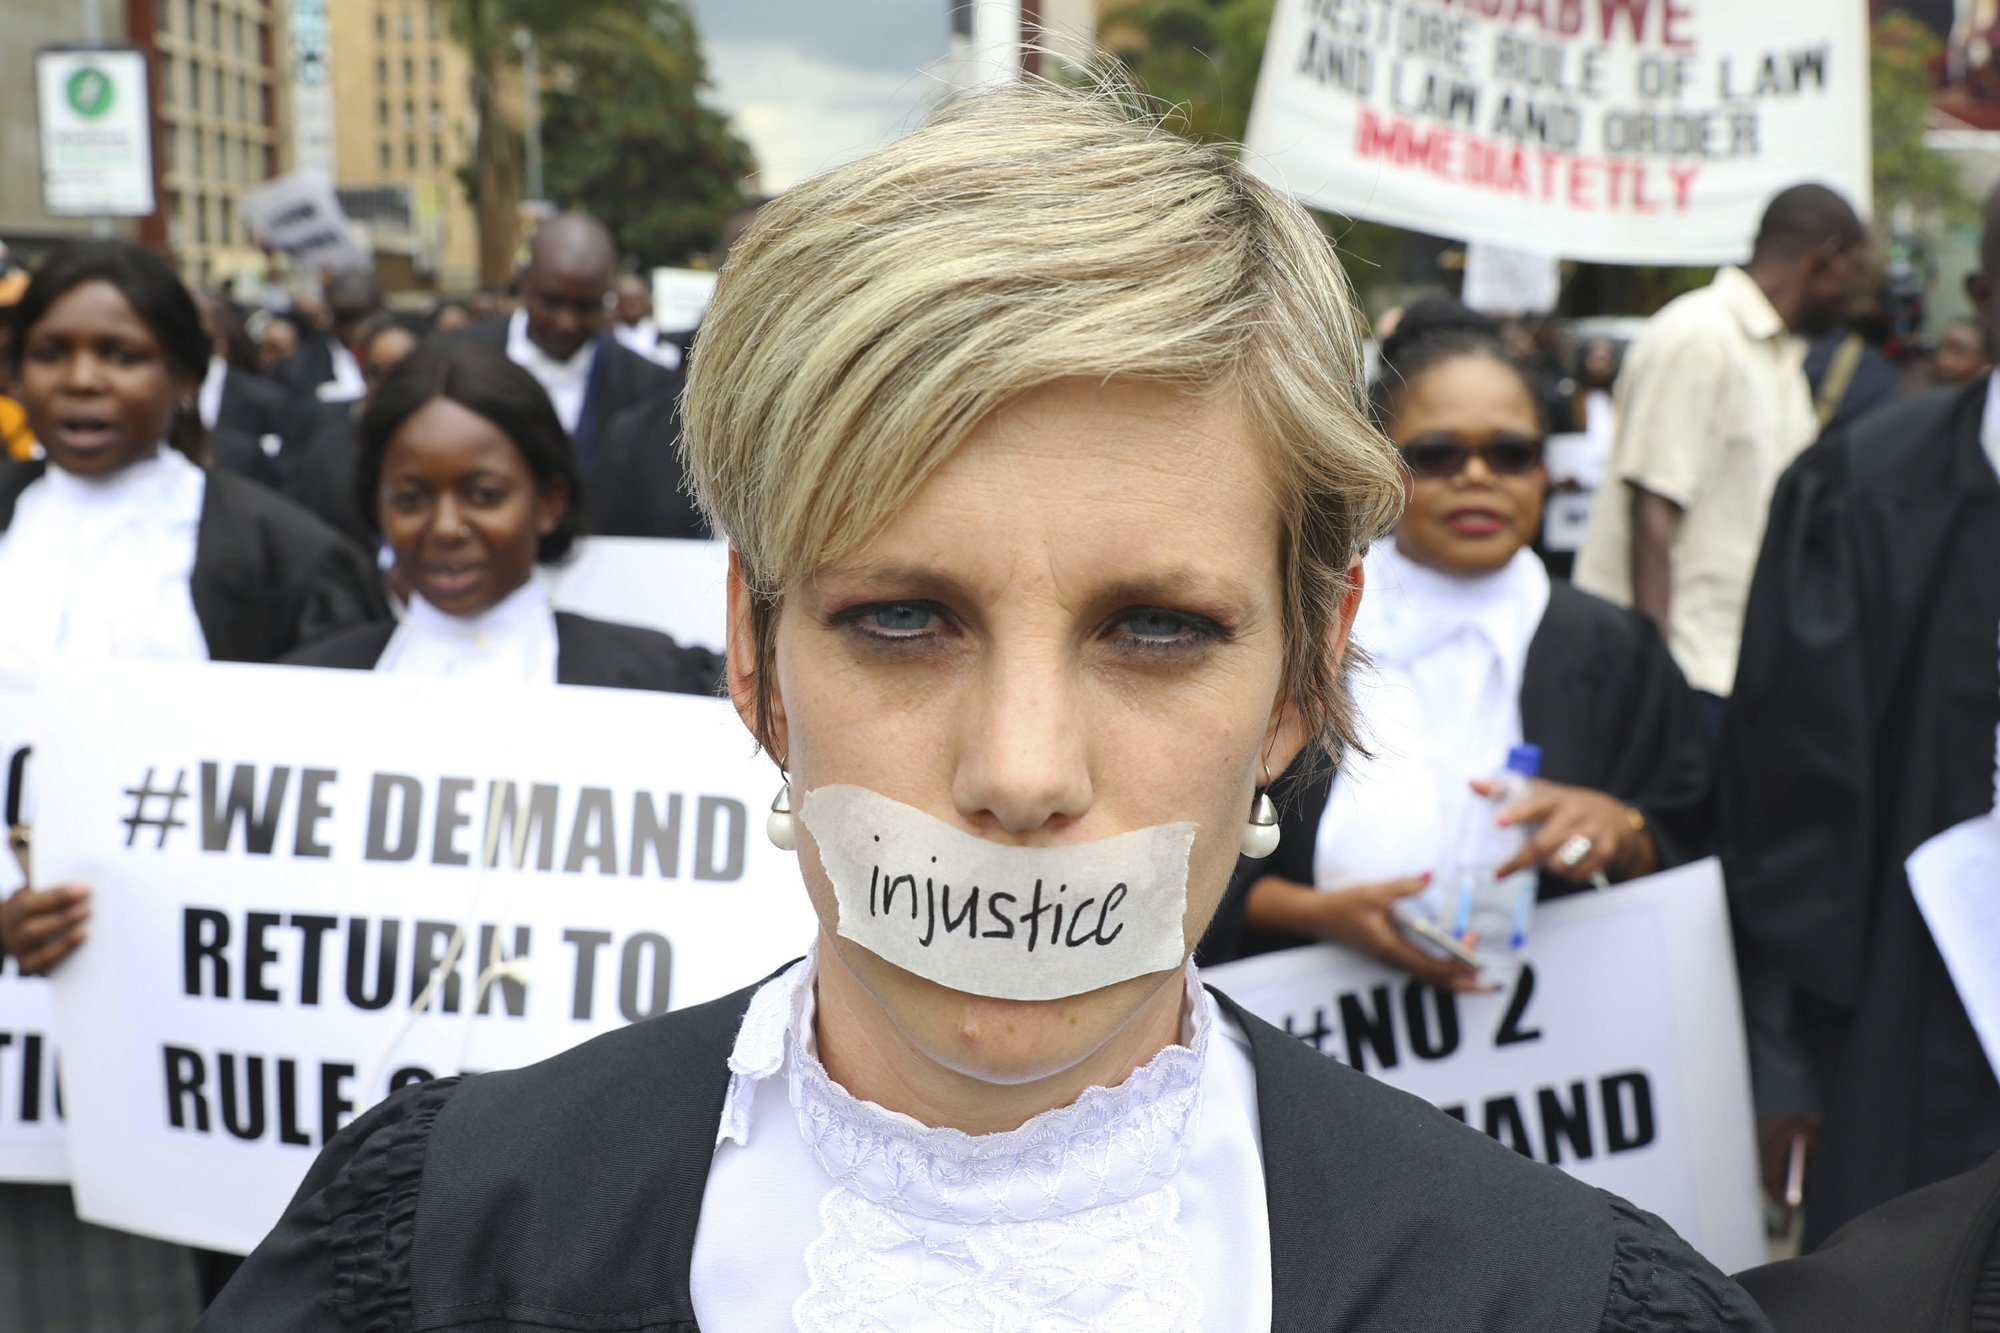 Lawyers march in Zimbabwe capital alleging denial of justice